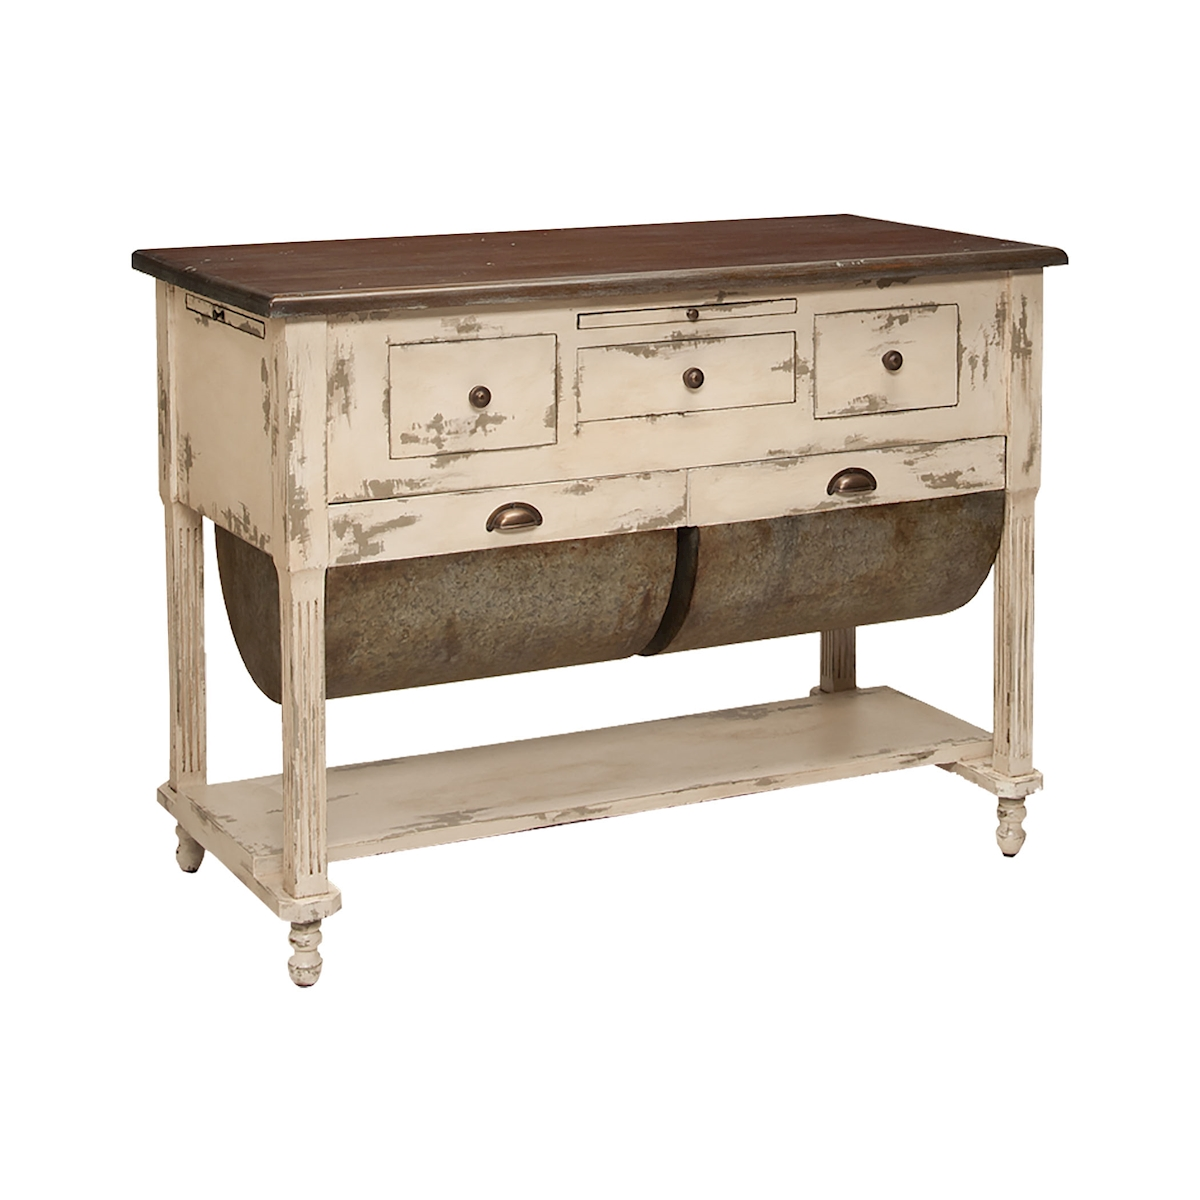 Possum Belly Kitchen Island in Distressed Cream | Elk Home